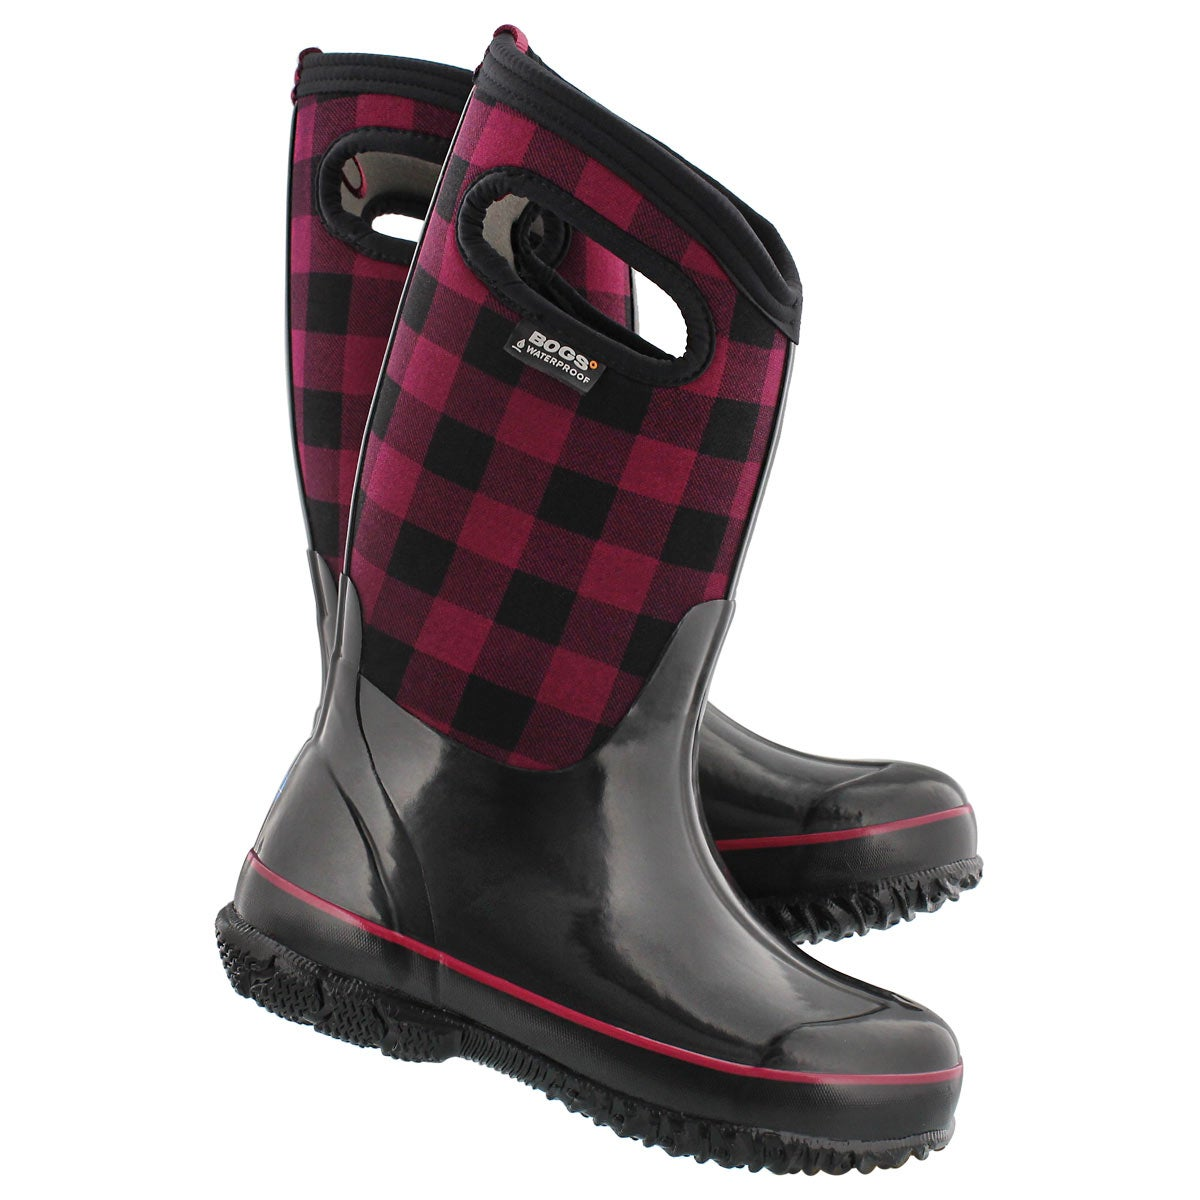 Grls Classic Buffalo Plaid red boot